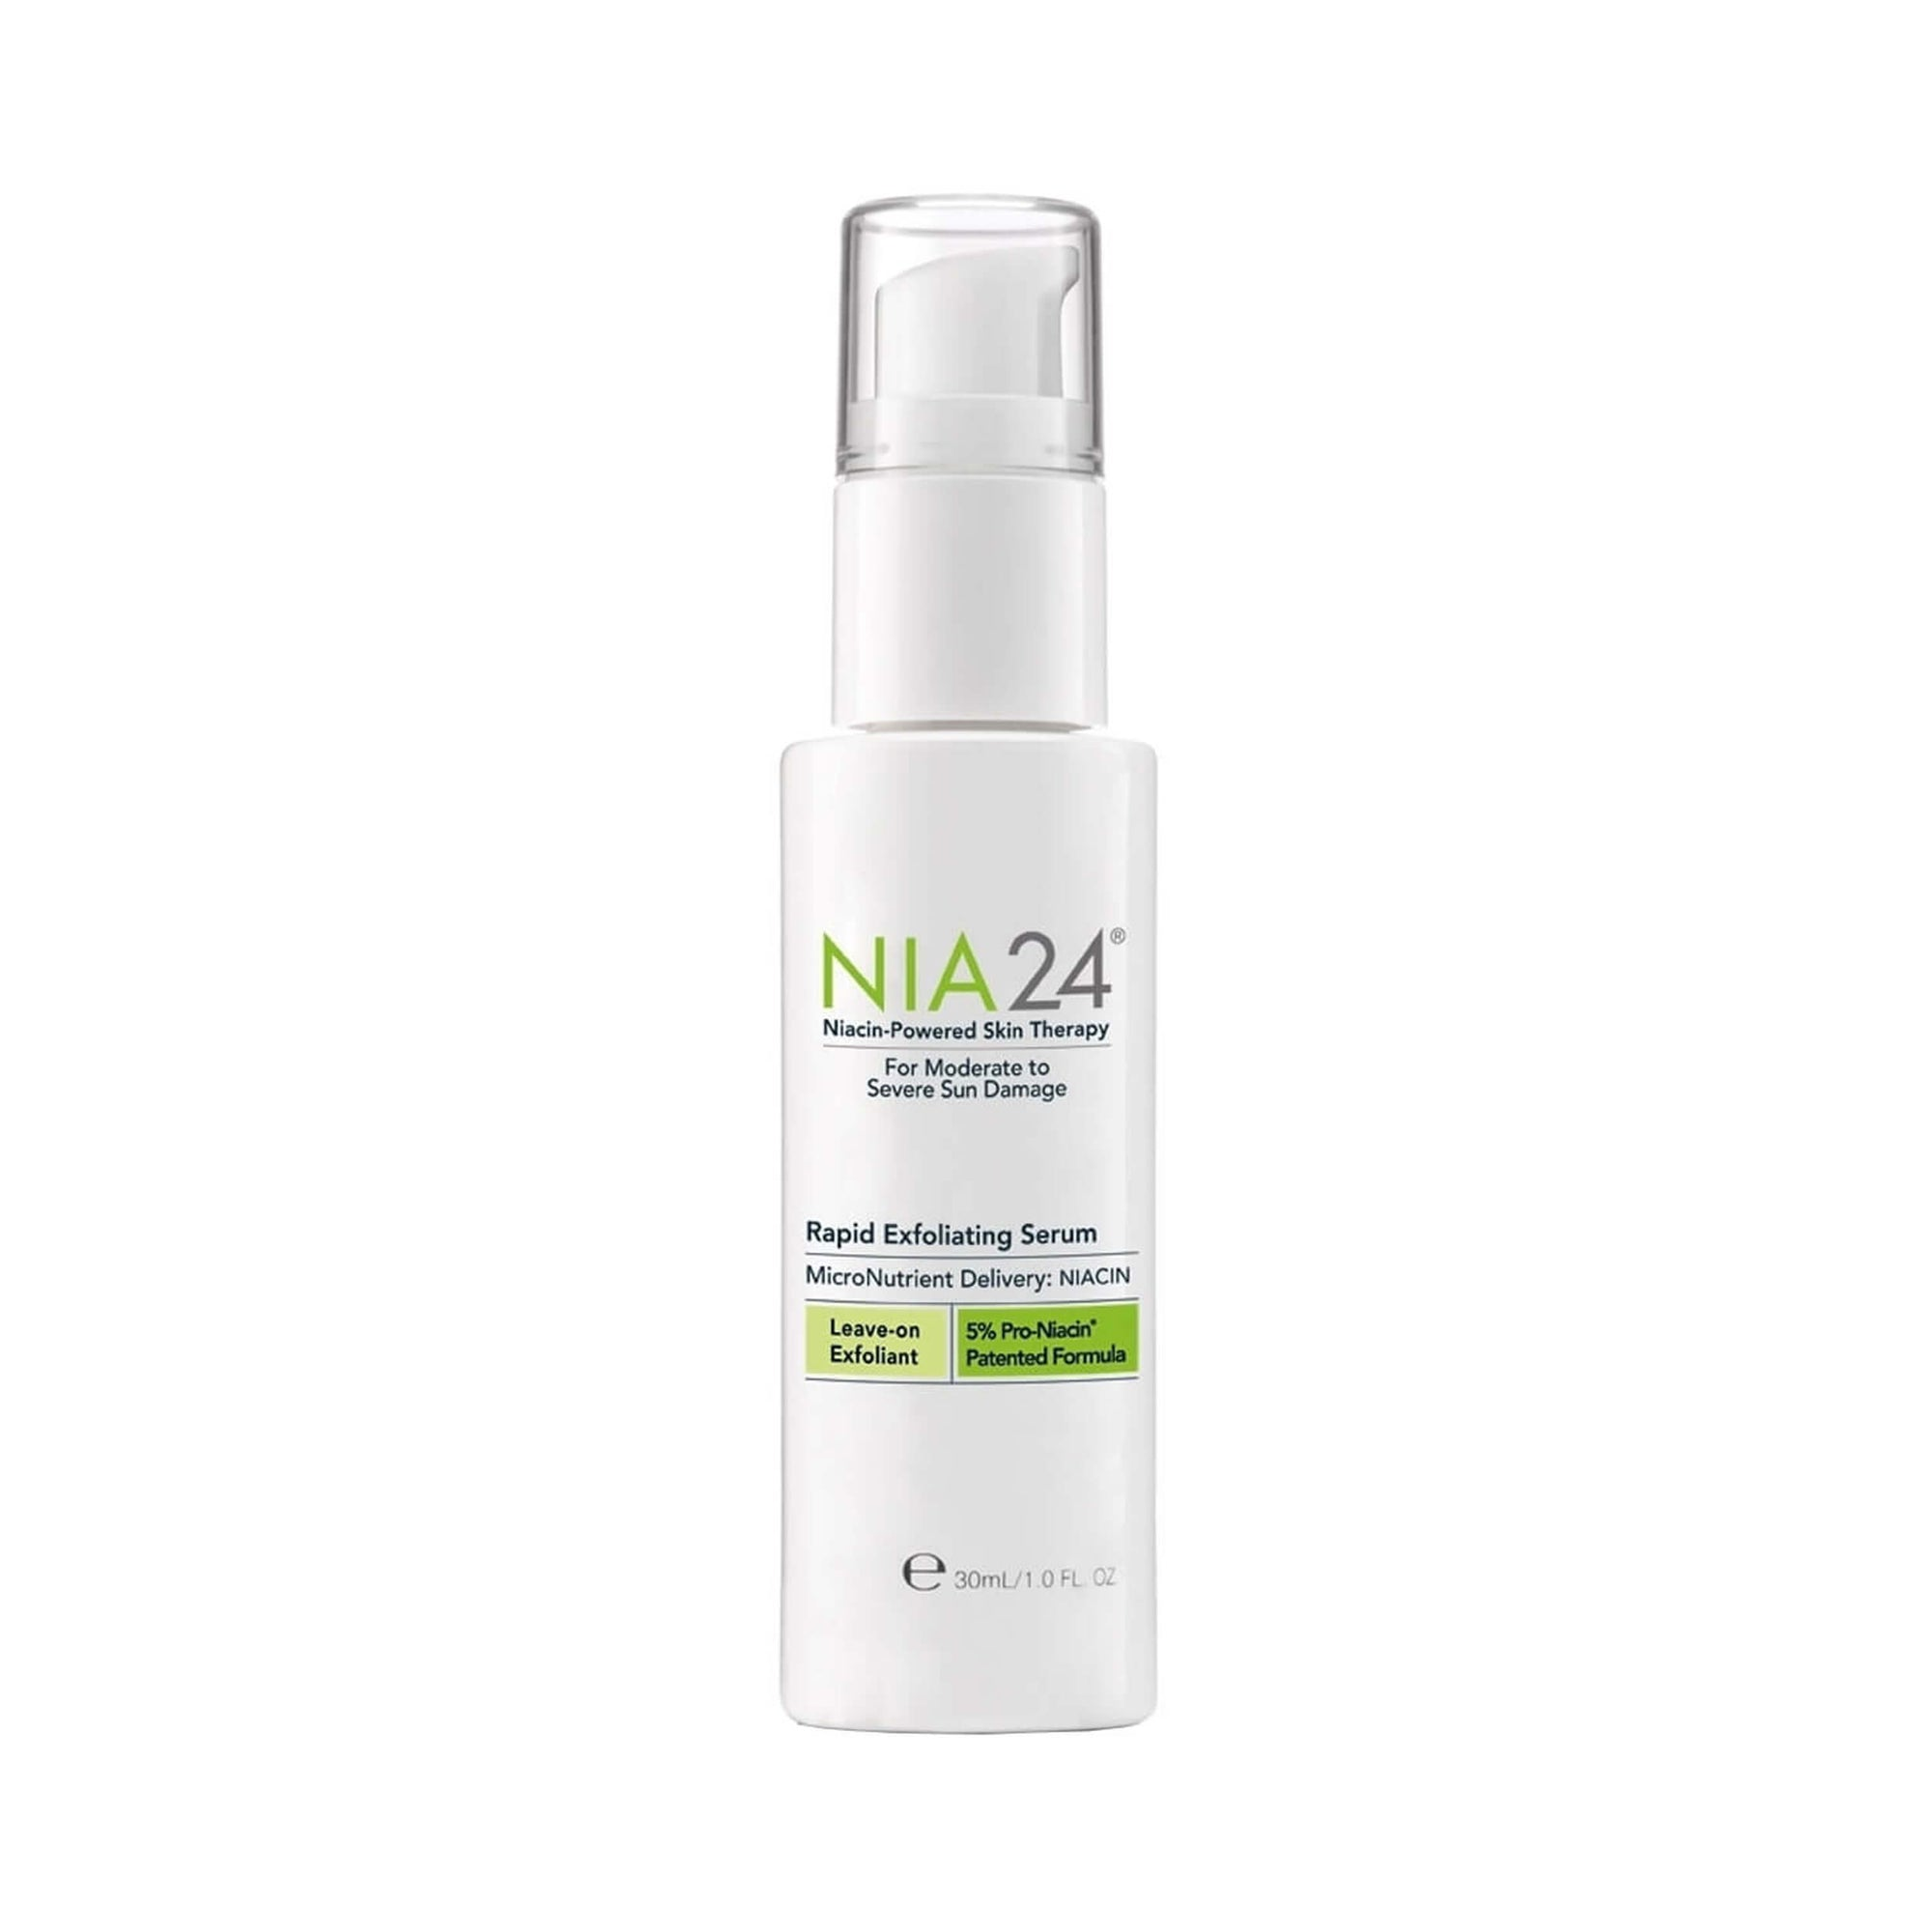 Nia 24 Rapid Exfoliating Serum 30 mL